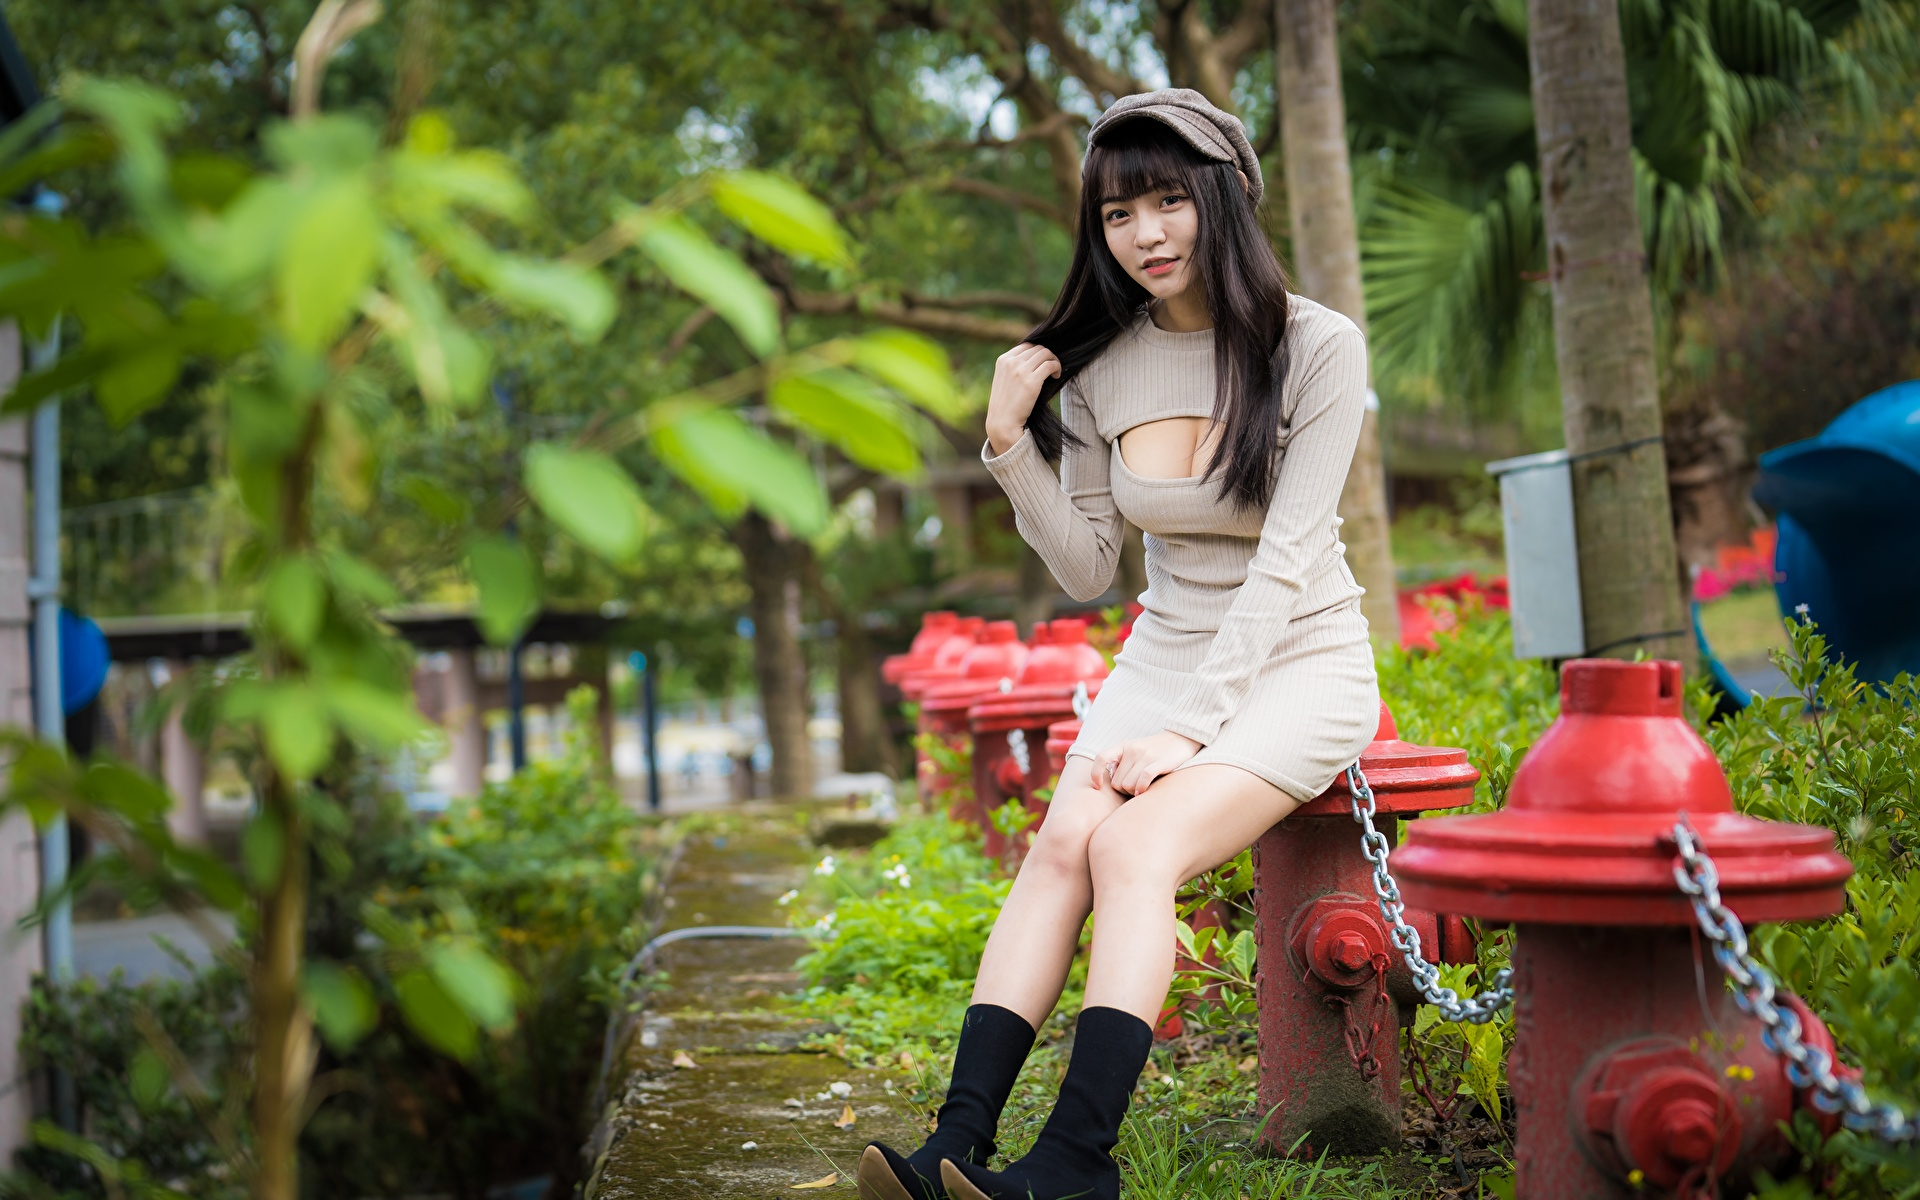 Pictures Brunette girl Wearing boots Décolletage Girls Legs Asian Chain sit Hands Baseball cap Dress 1920x1200 neckline decollete female young woman Asiatic Sitting gown frock